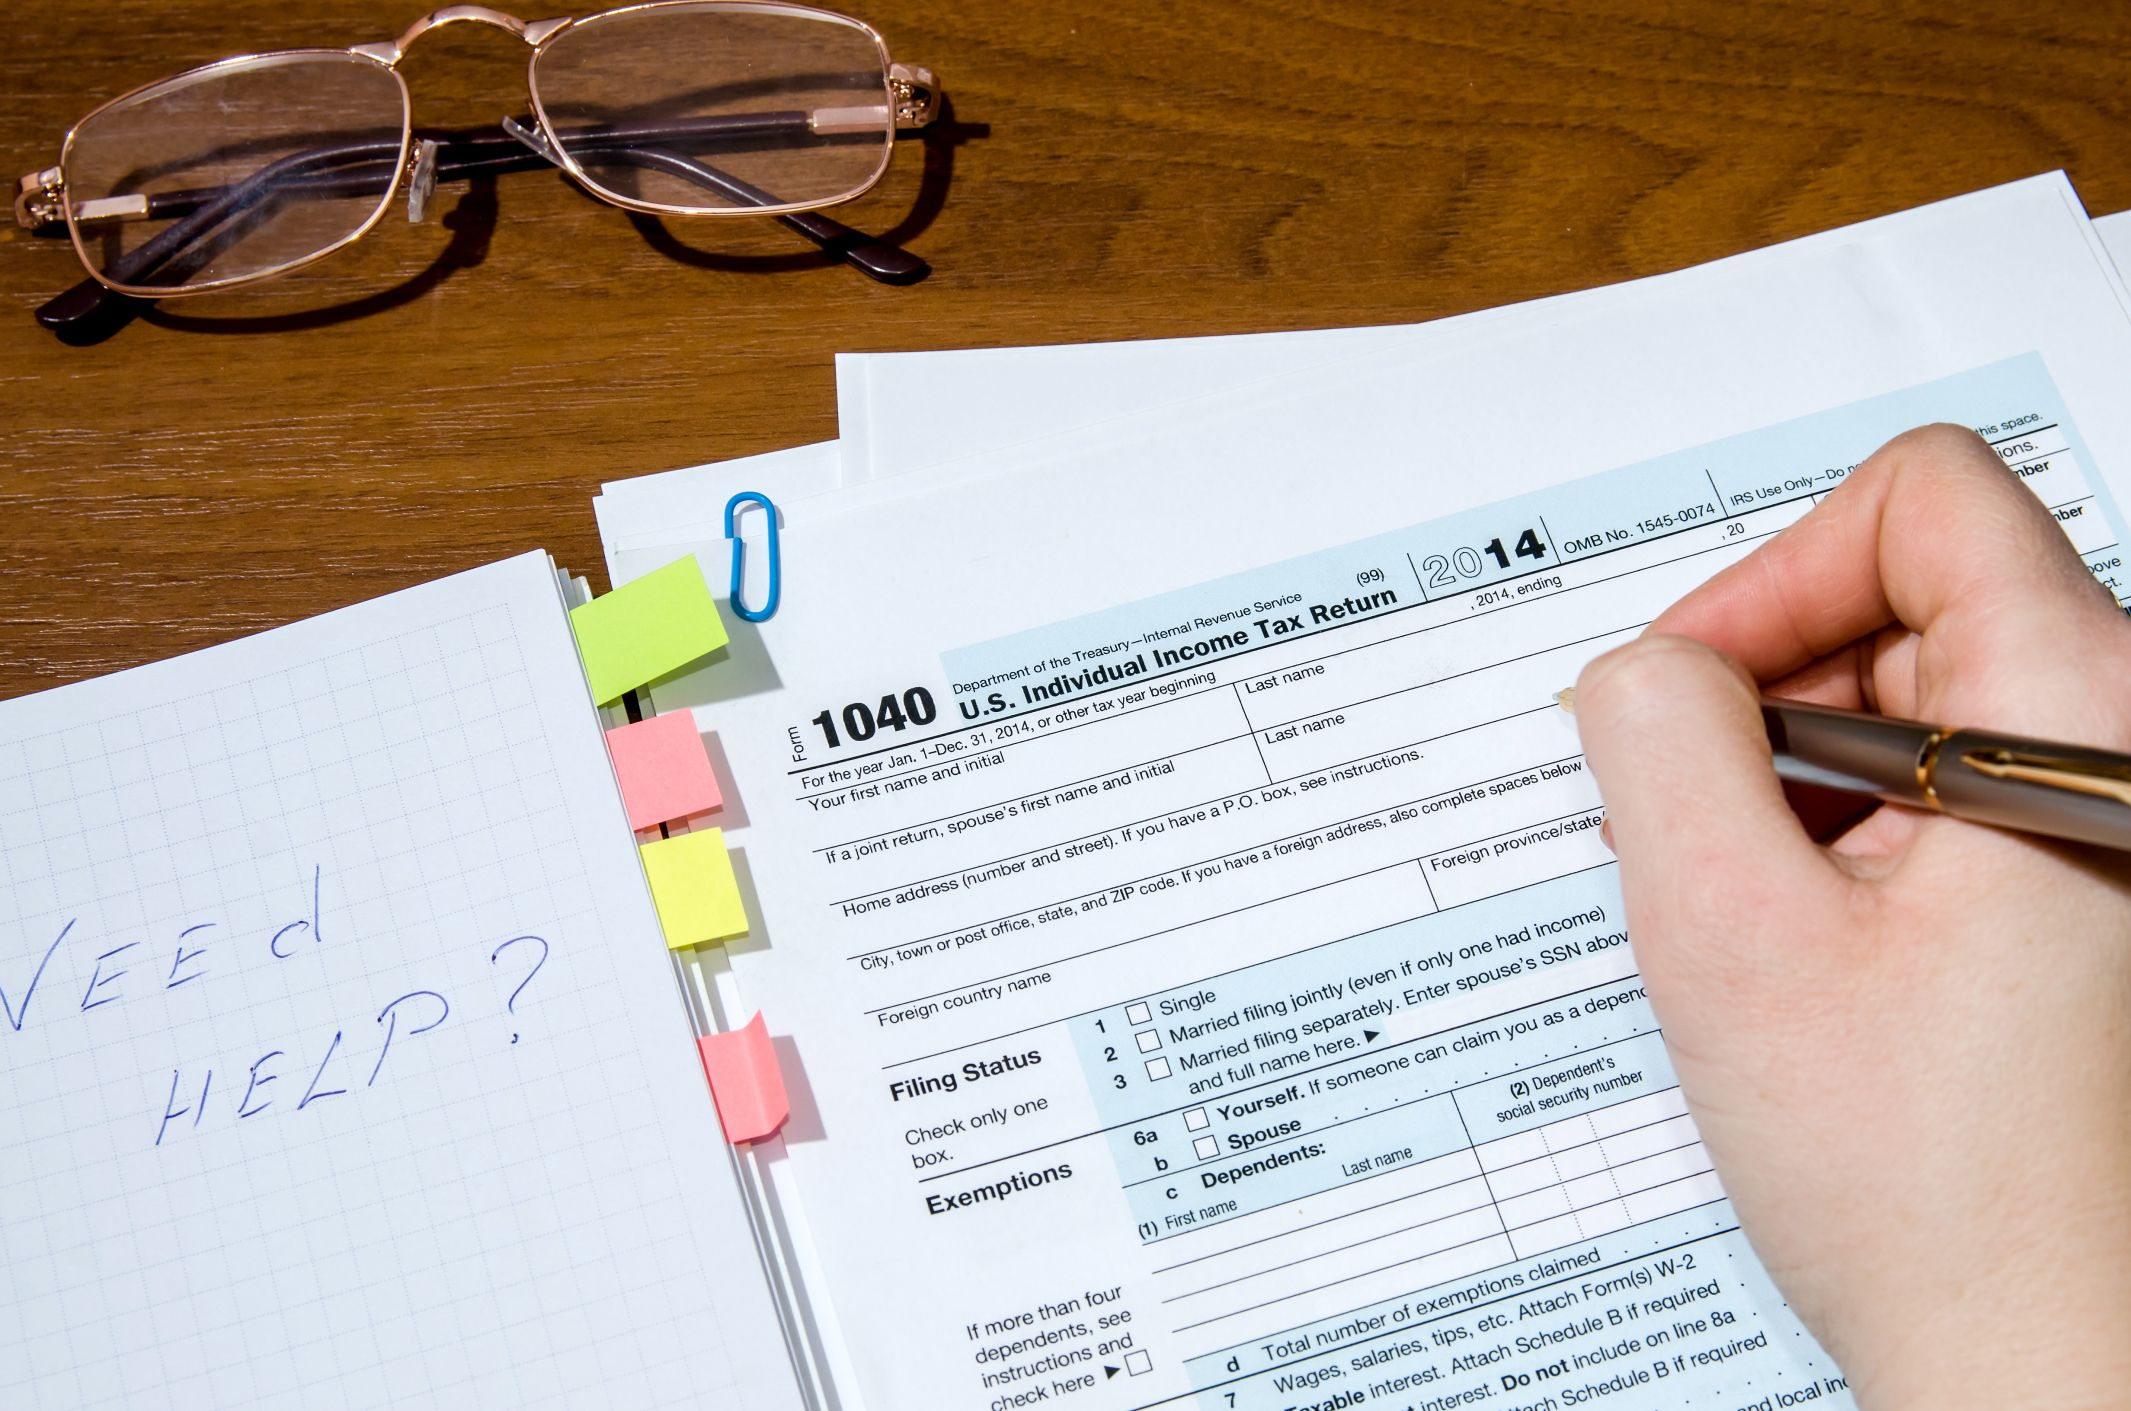 50 Yes 50 Tax Write Offs You Don T Know About Tax Write Offs Tax Deductions Filing Taxes Married